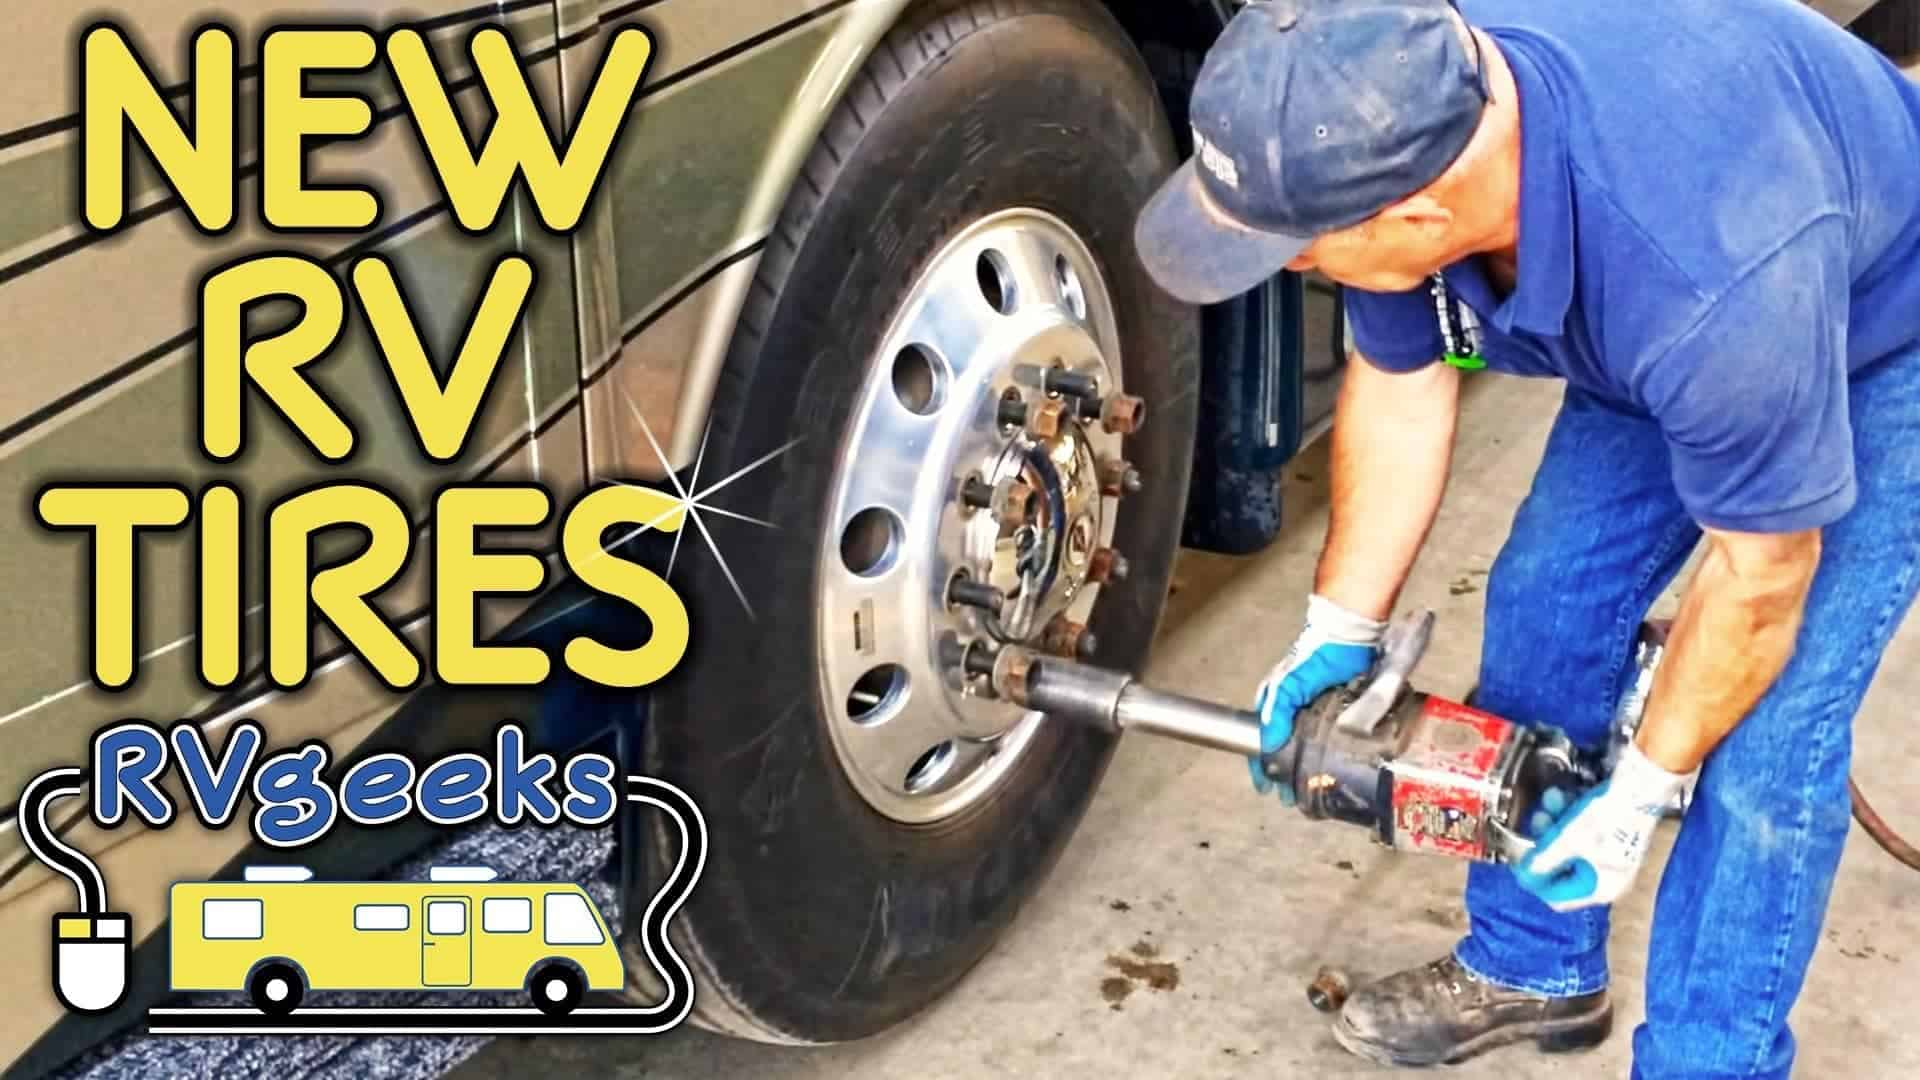 RV Tire Replacement – Overview & Tips